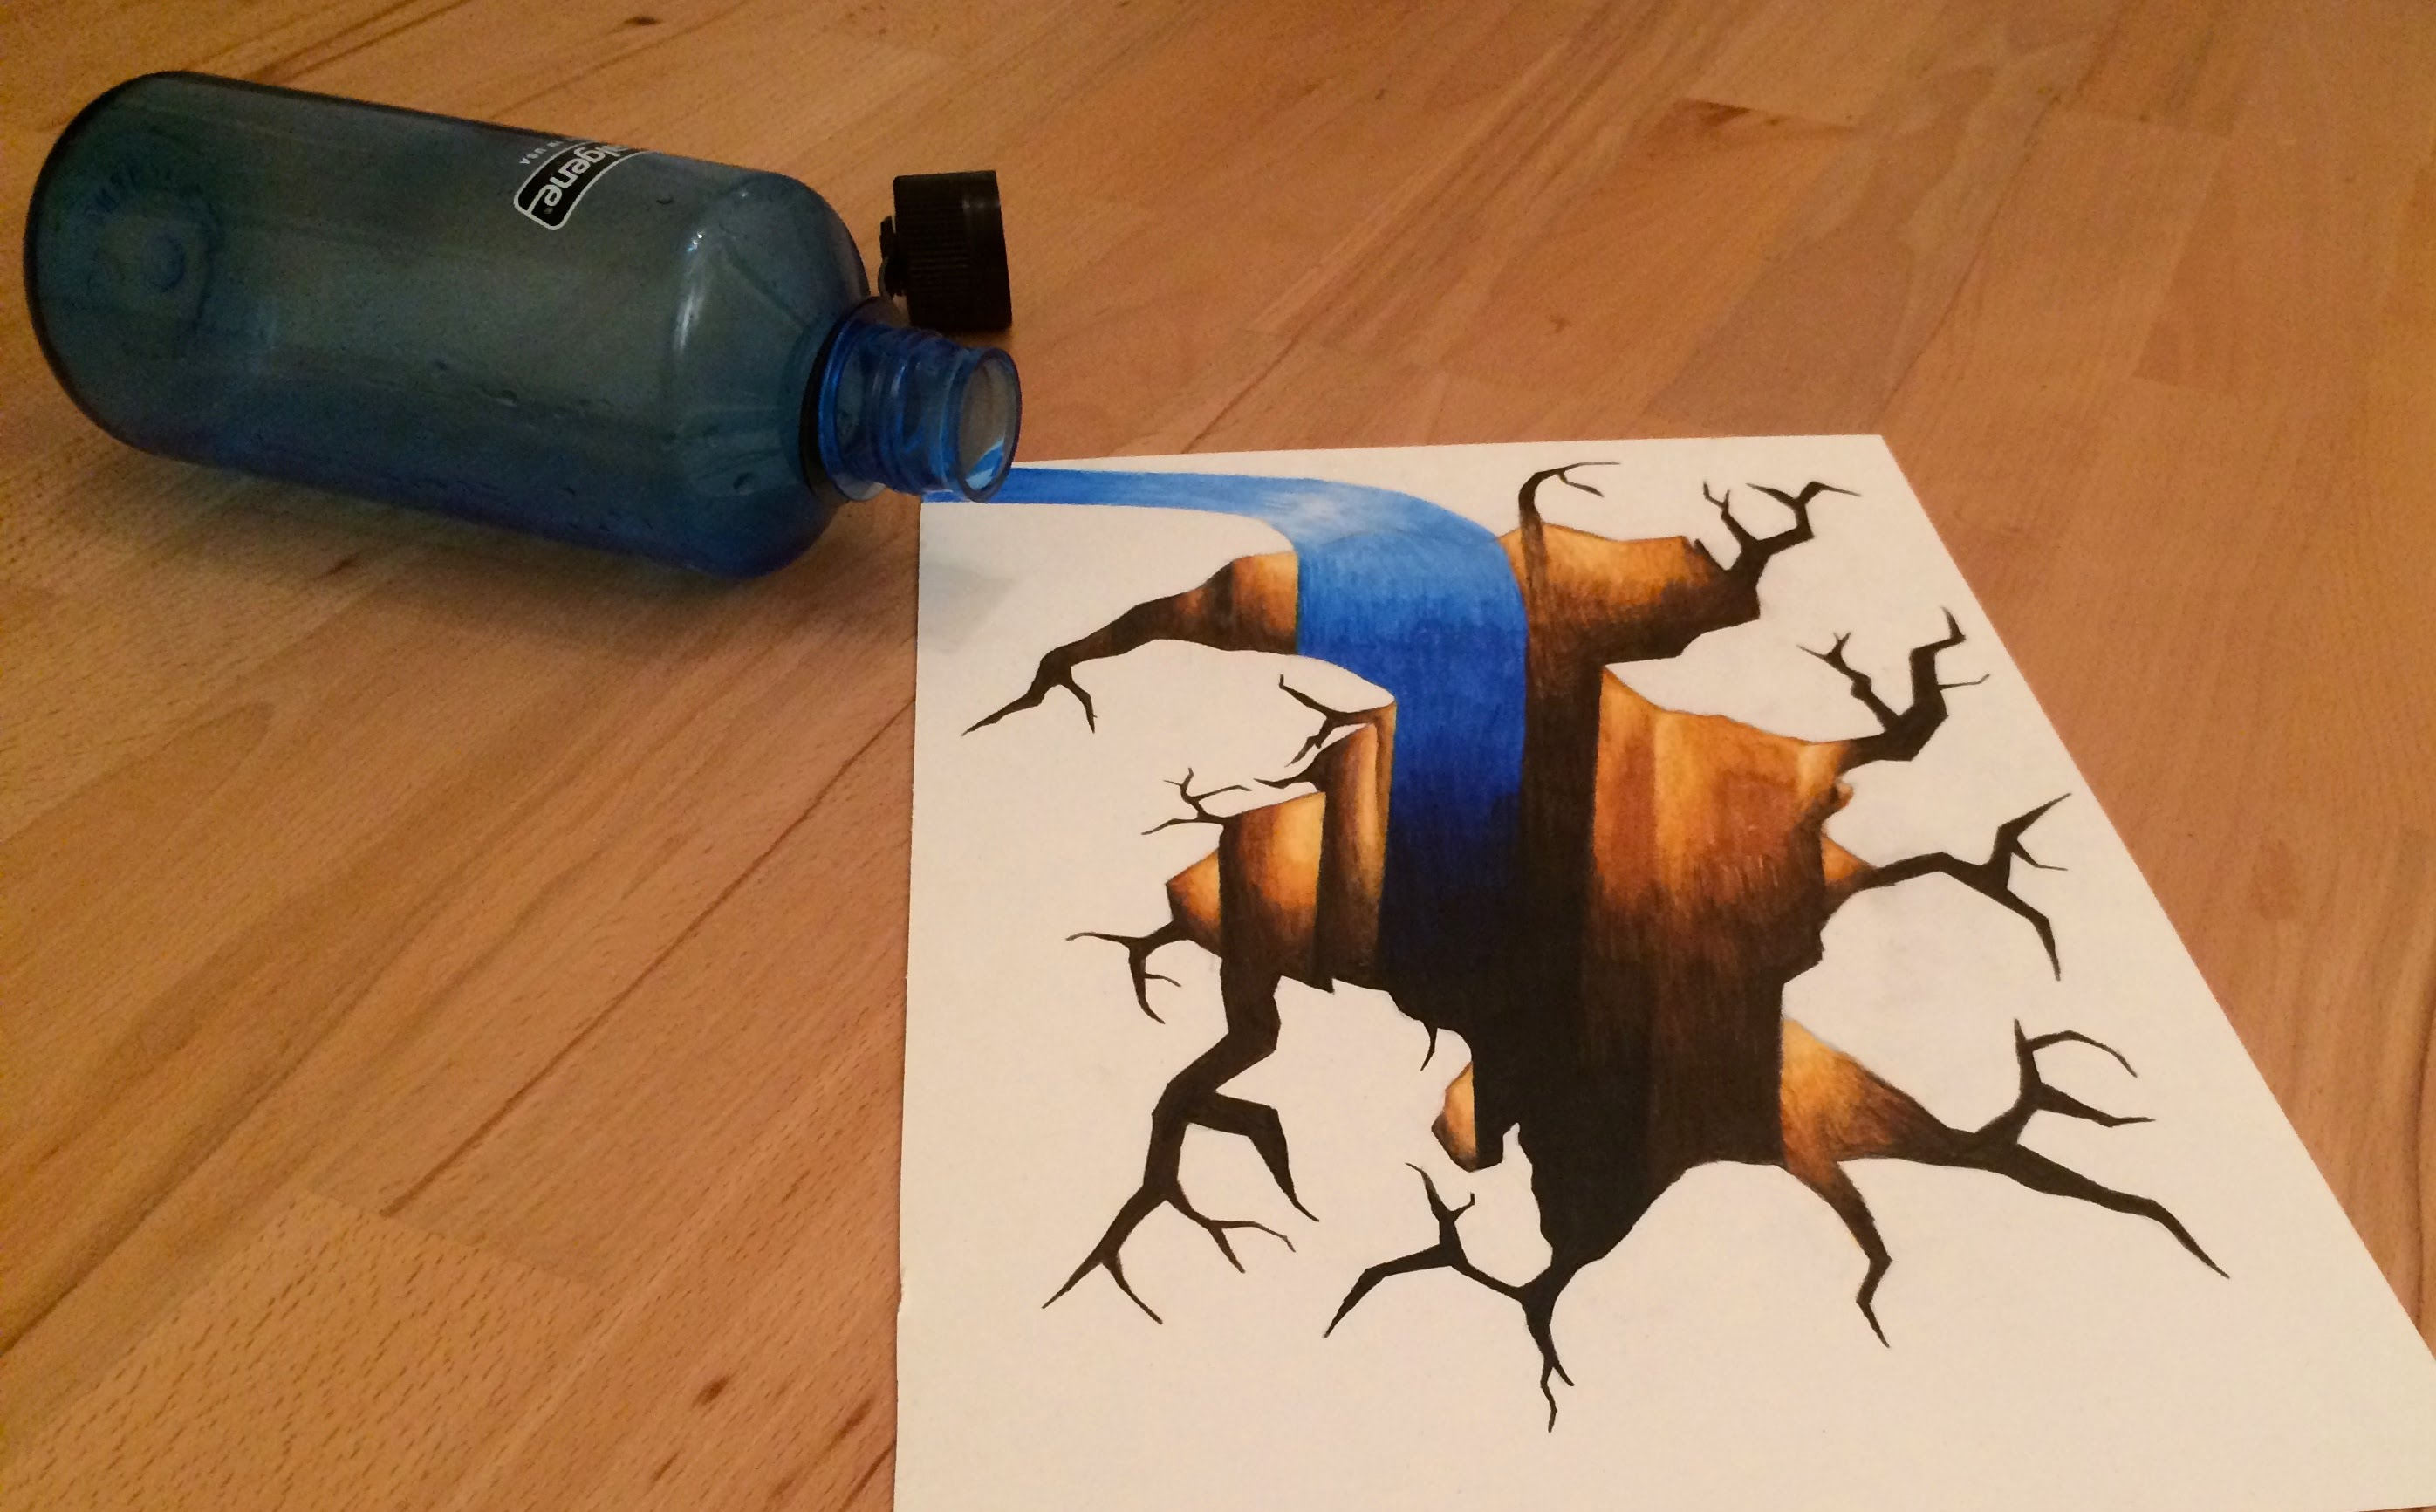 Drawn optical illusion crack Spilled hole with floor water